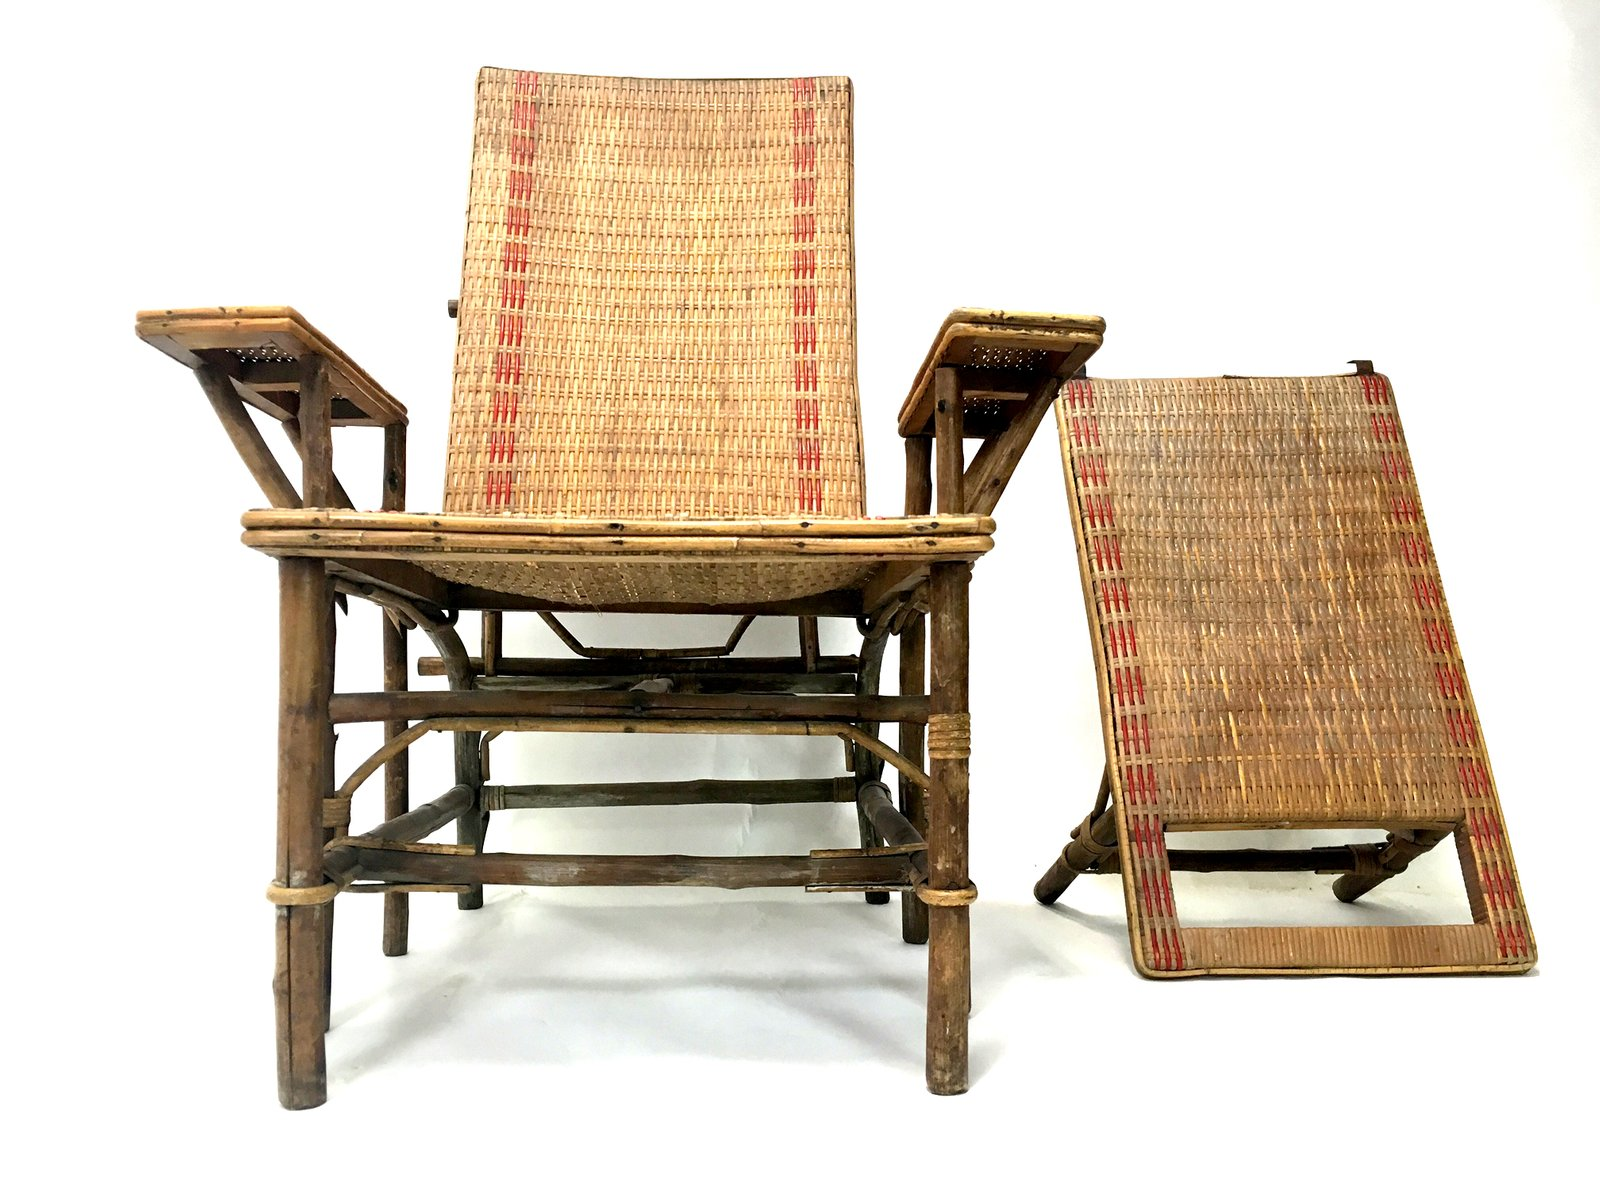 French wicker and bamboo chaise longue with footrest for Chaise longue bois avec repose pied